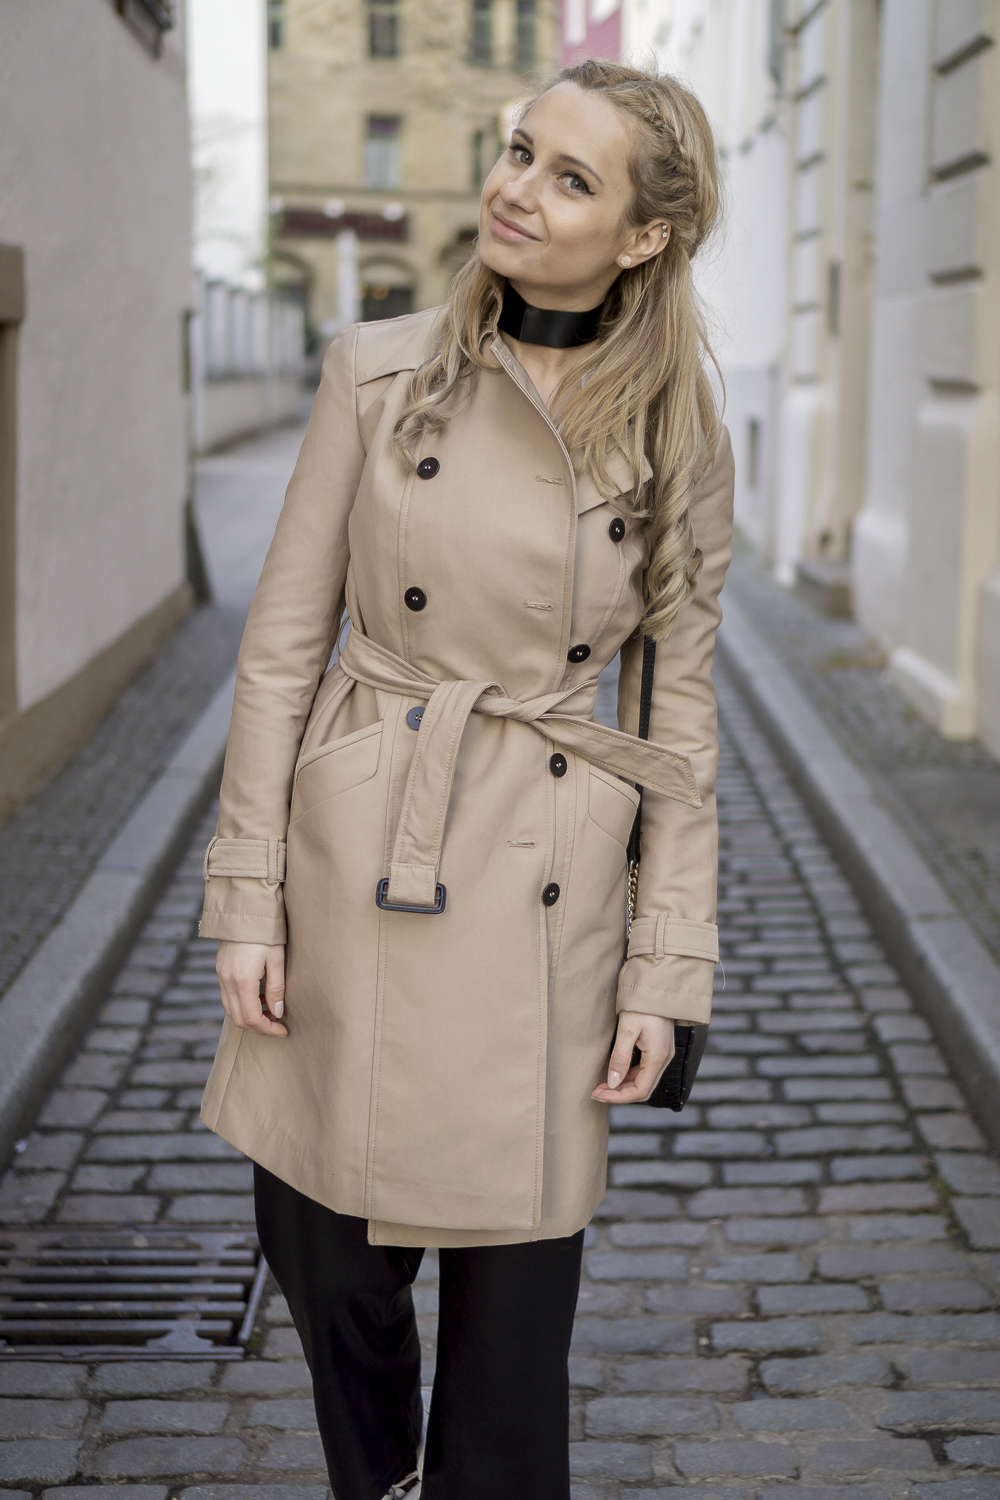 wearing beige trench coat from zara, mango leather pants. OOTD outfit look